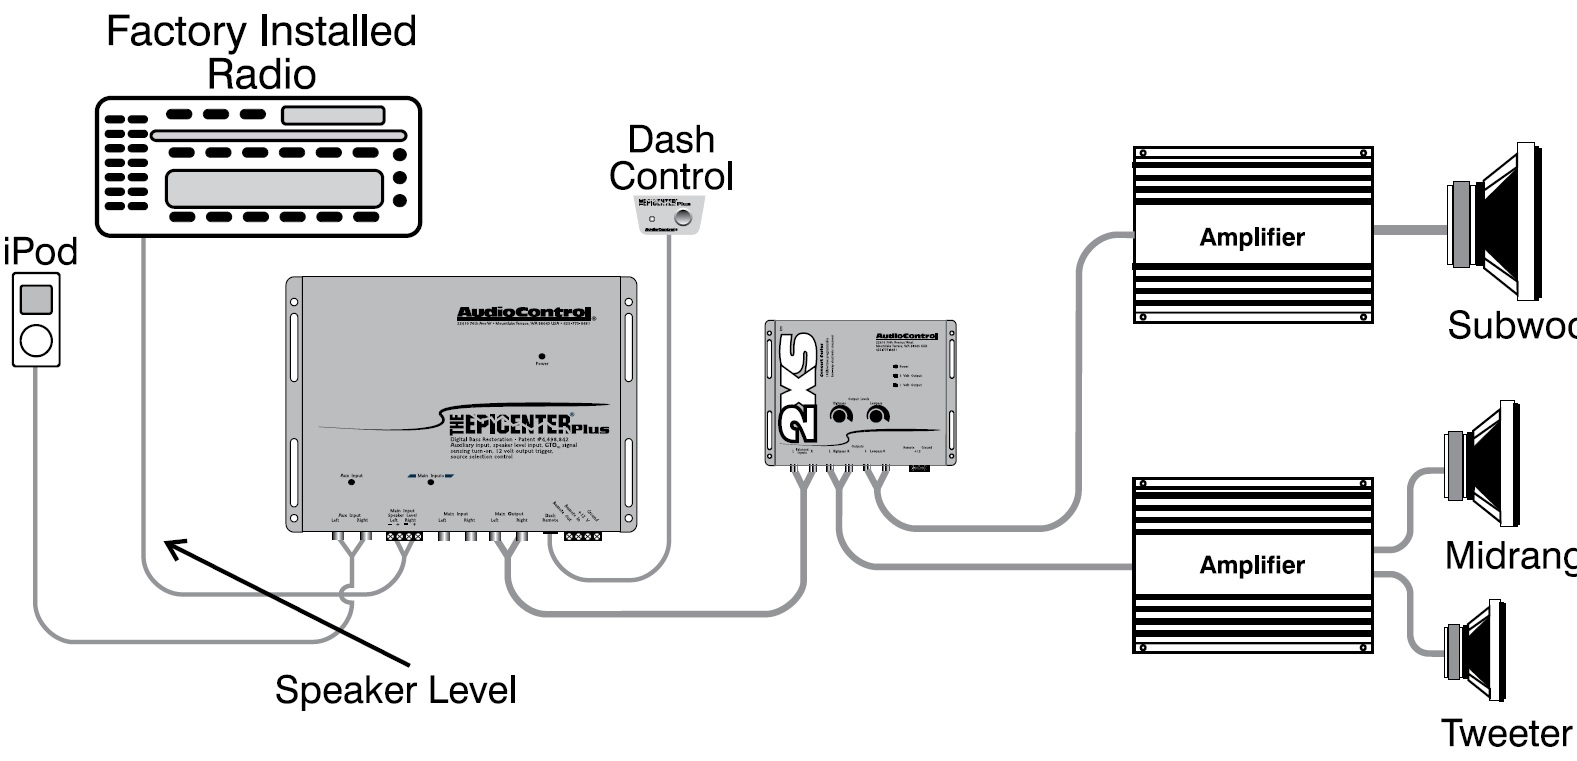 epicenterplus_simpleinstall car application diagrams audiocontrol how to wire a pa system diagram at aneh.co